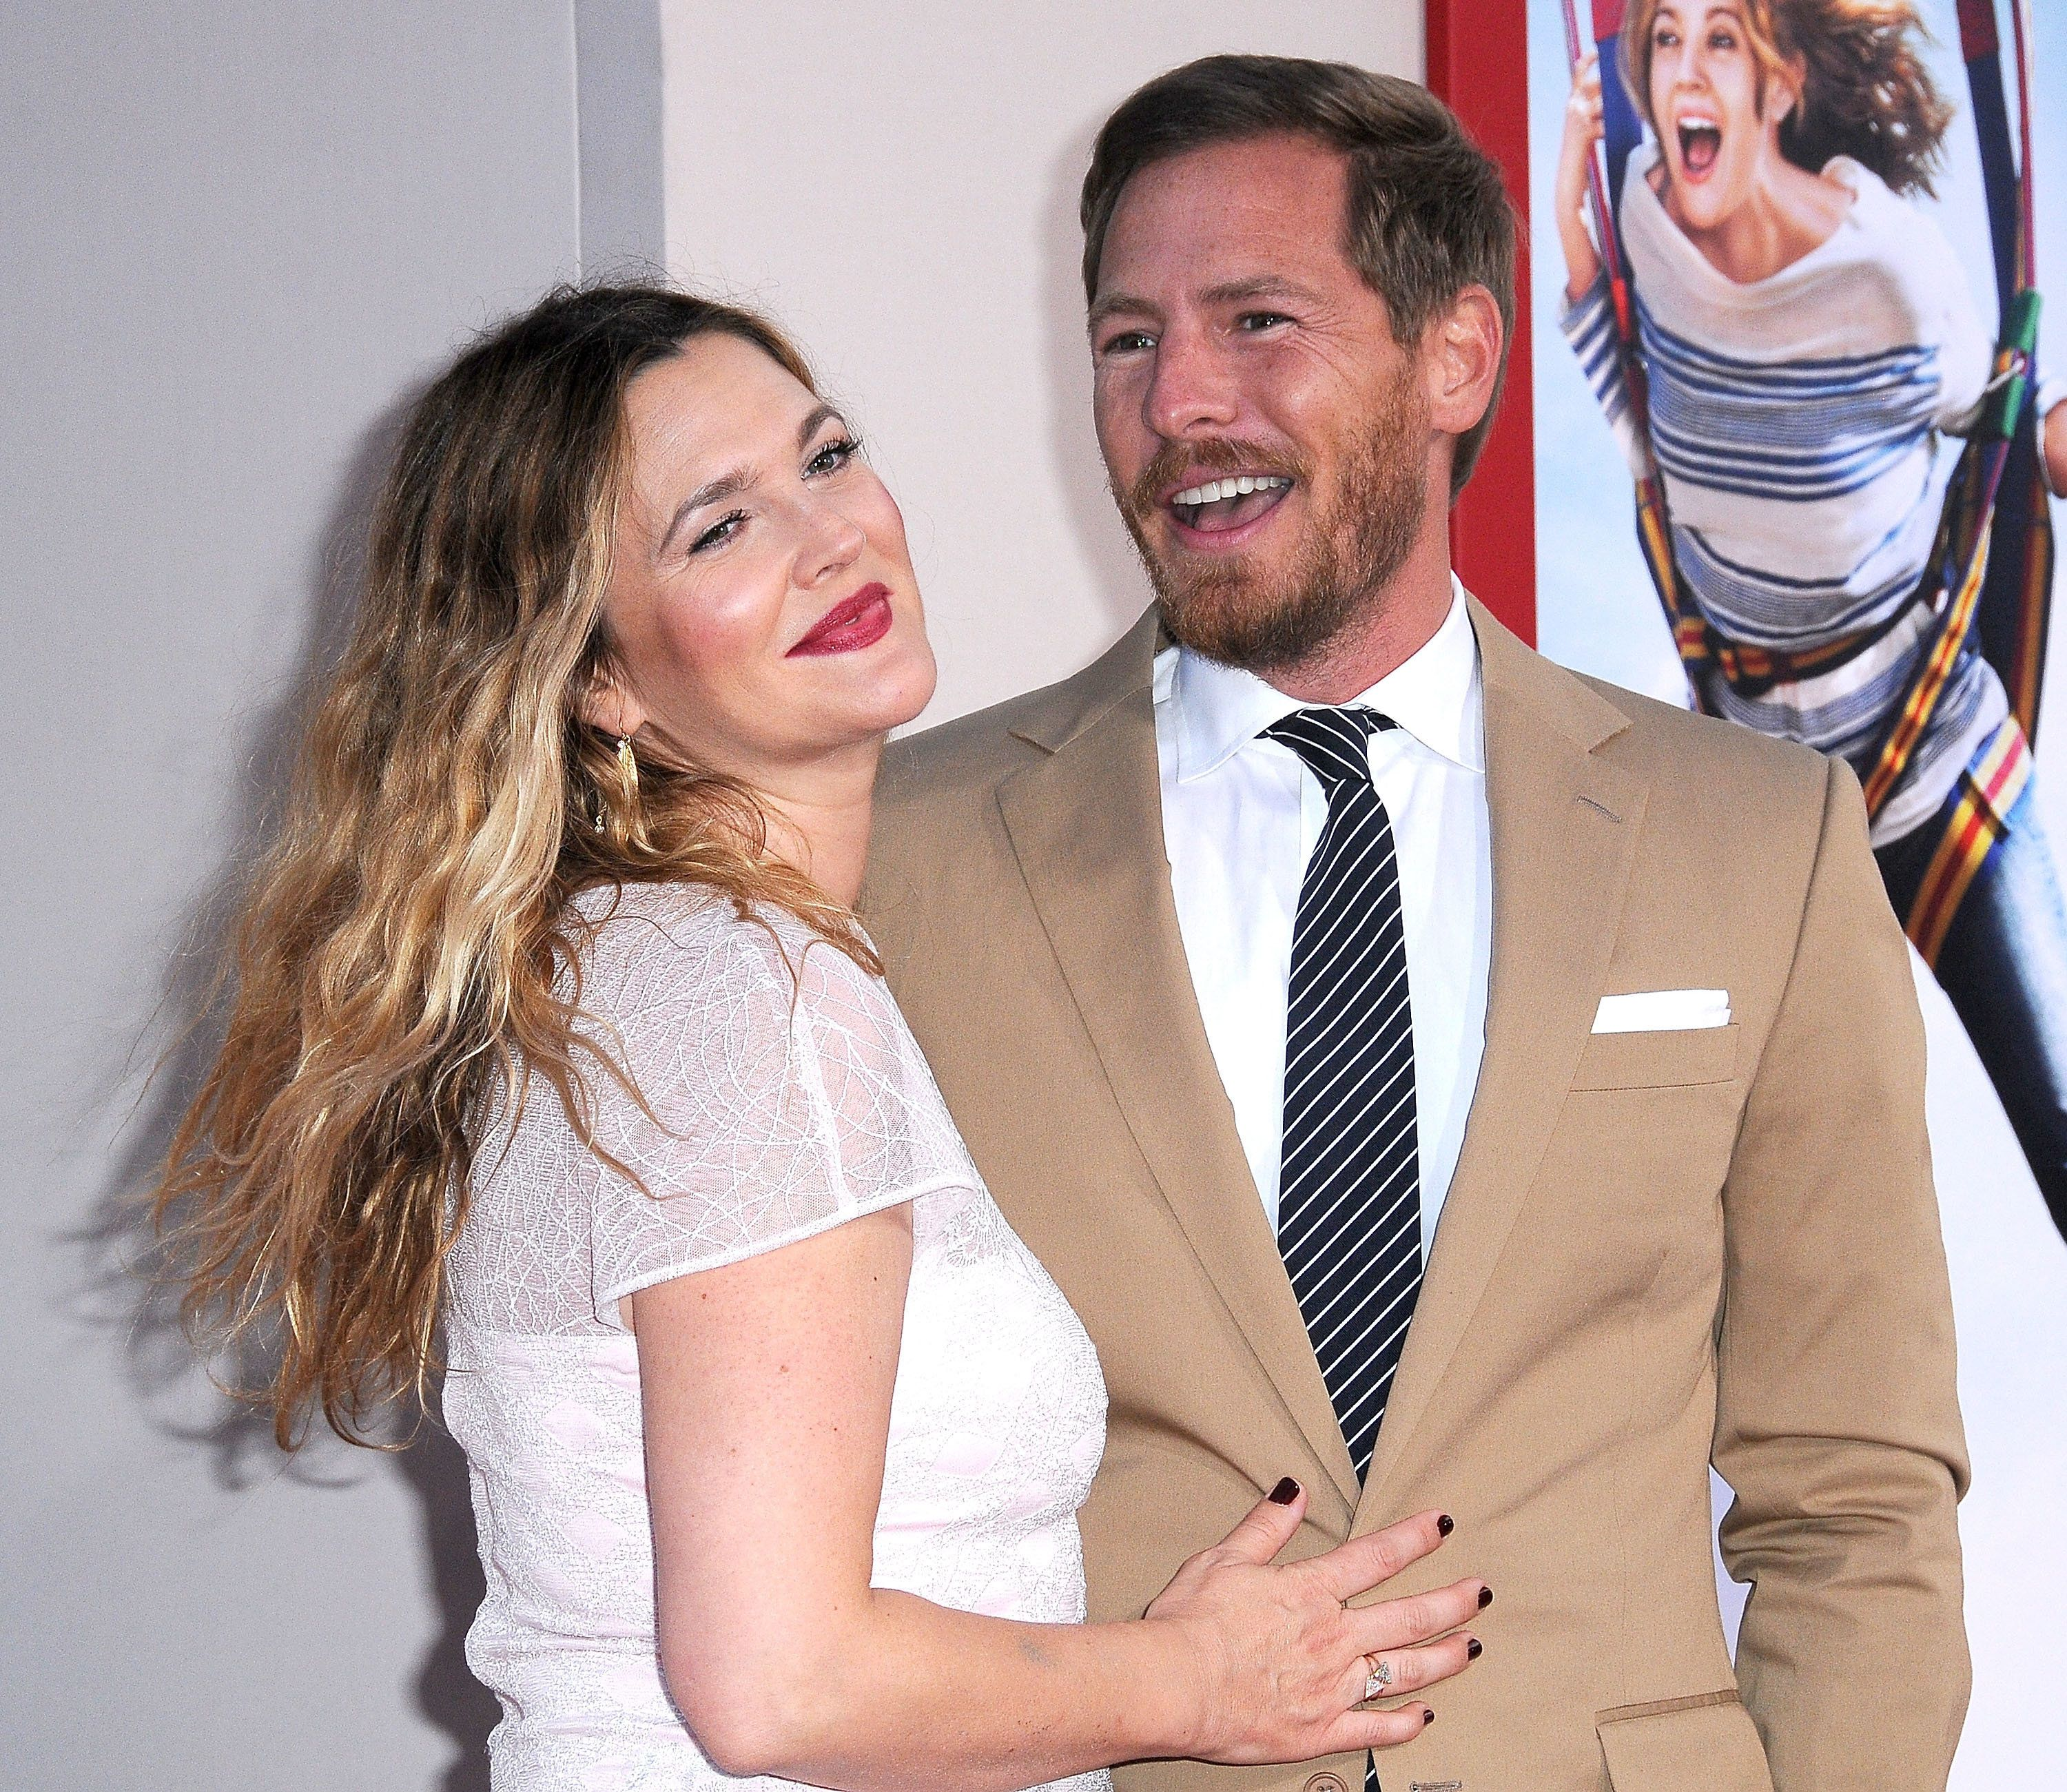 HOLLYWOOD, CA - MAY 21:  Actress Drew Barrymore (L) and husband actor Will Kopelman arrive at the Los Angeles Premiere 'Blended' on May 21, 2014 at TCL Chinese Theatre in Hollywood, California.  (Photo by Barry King/FilmMagic)